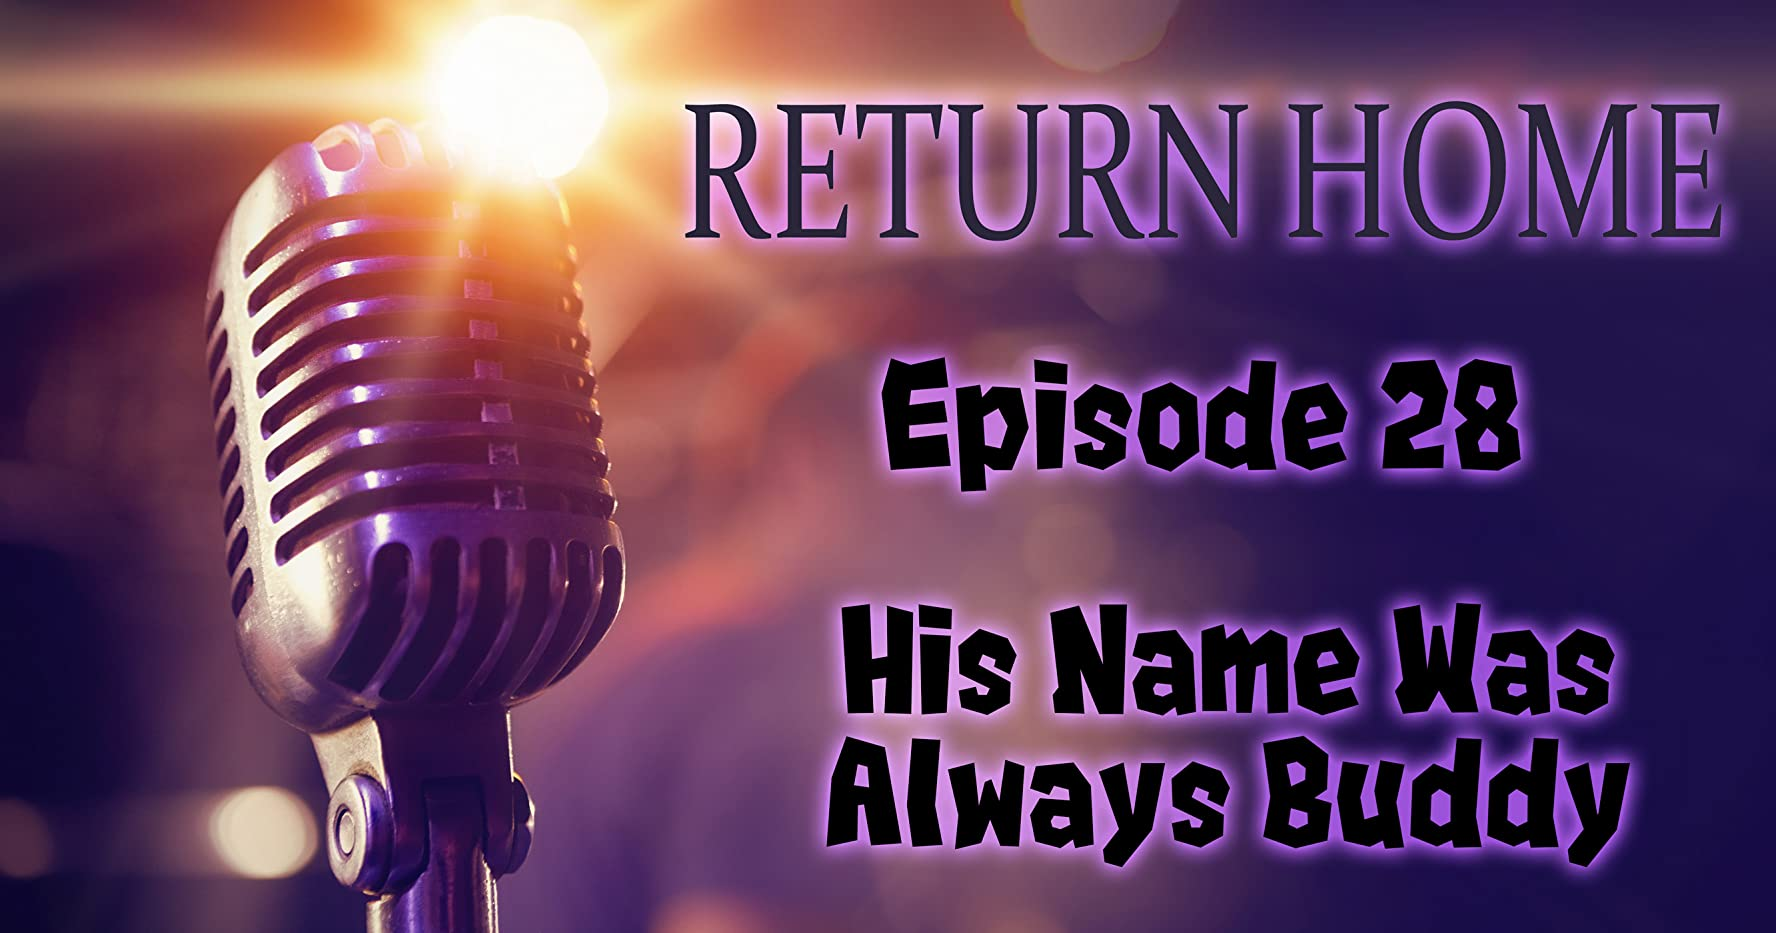 His Name Was Always Buddy (2019)